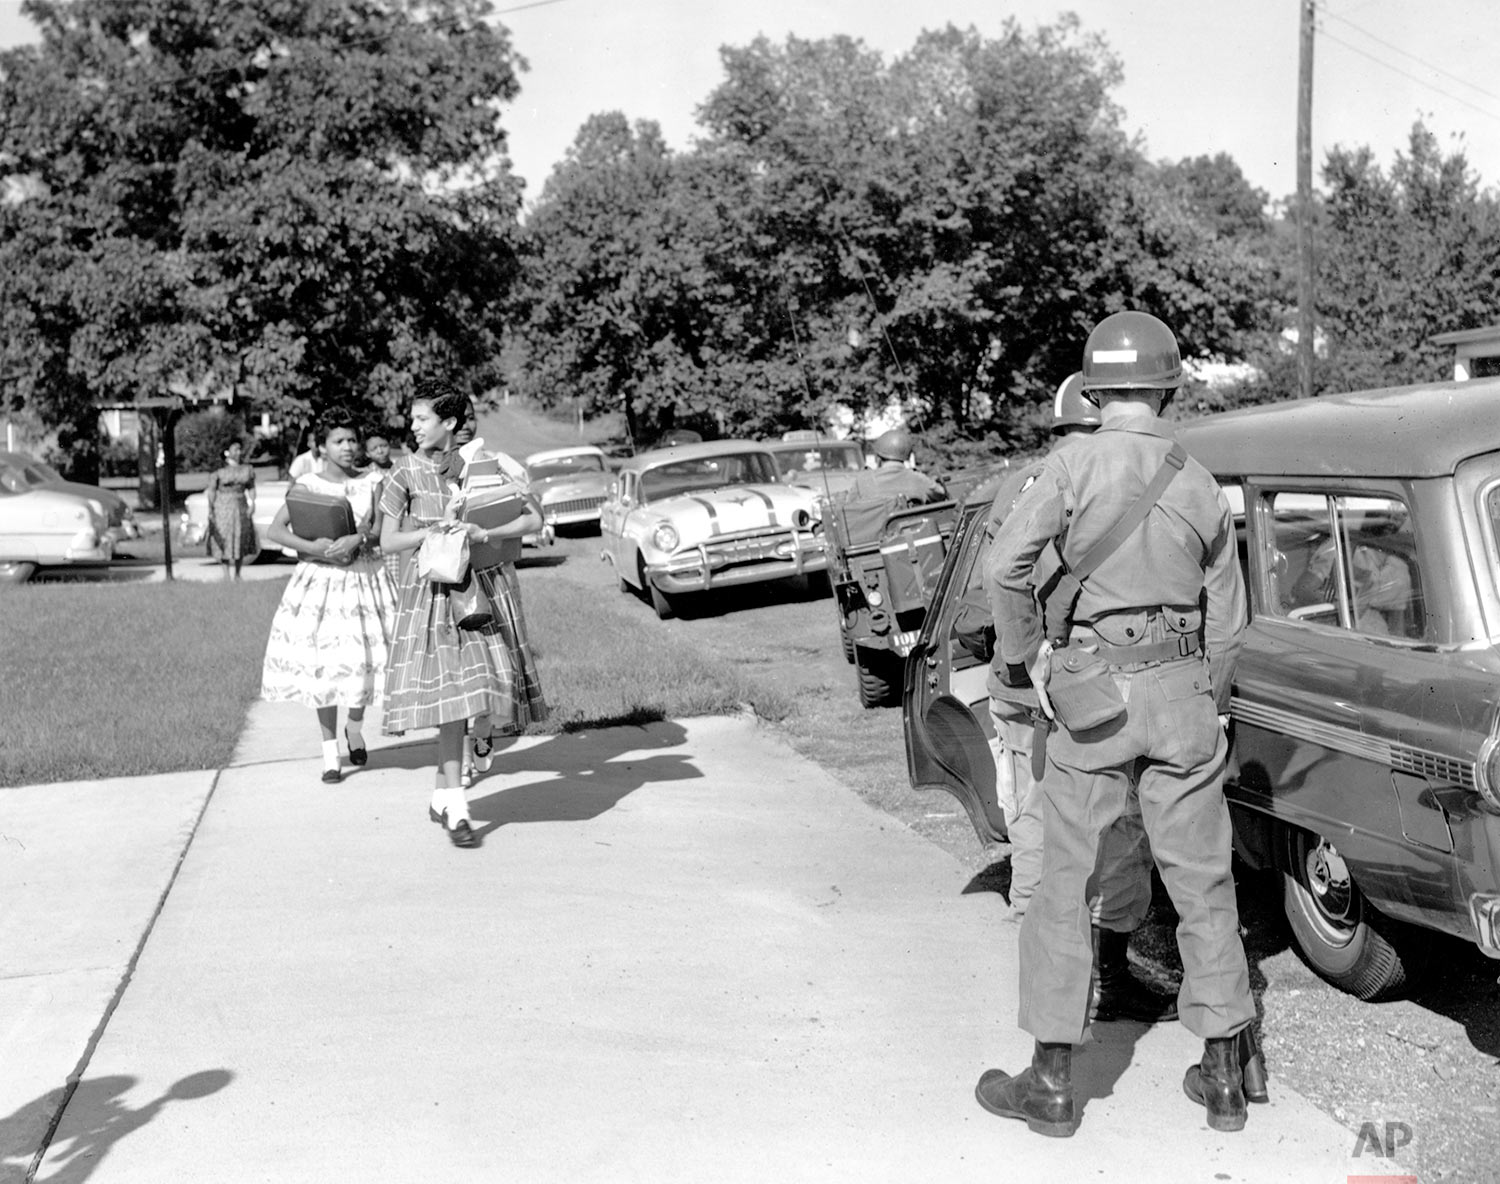 Black students leave the home of Mrs. L.C. Bates, president of the Arkansas NAACP, on the morning of Sept. 25, 1957 to walk toward a station wagon driven by a trooper from the 101st Airborne Division enroute to Central High School. (AP Photo)